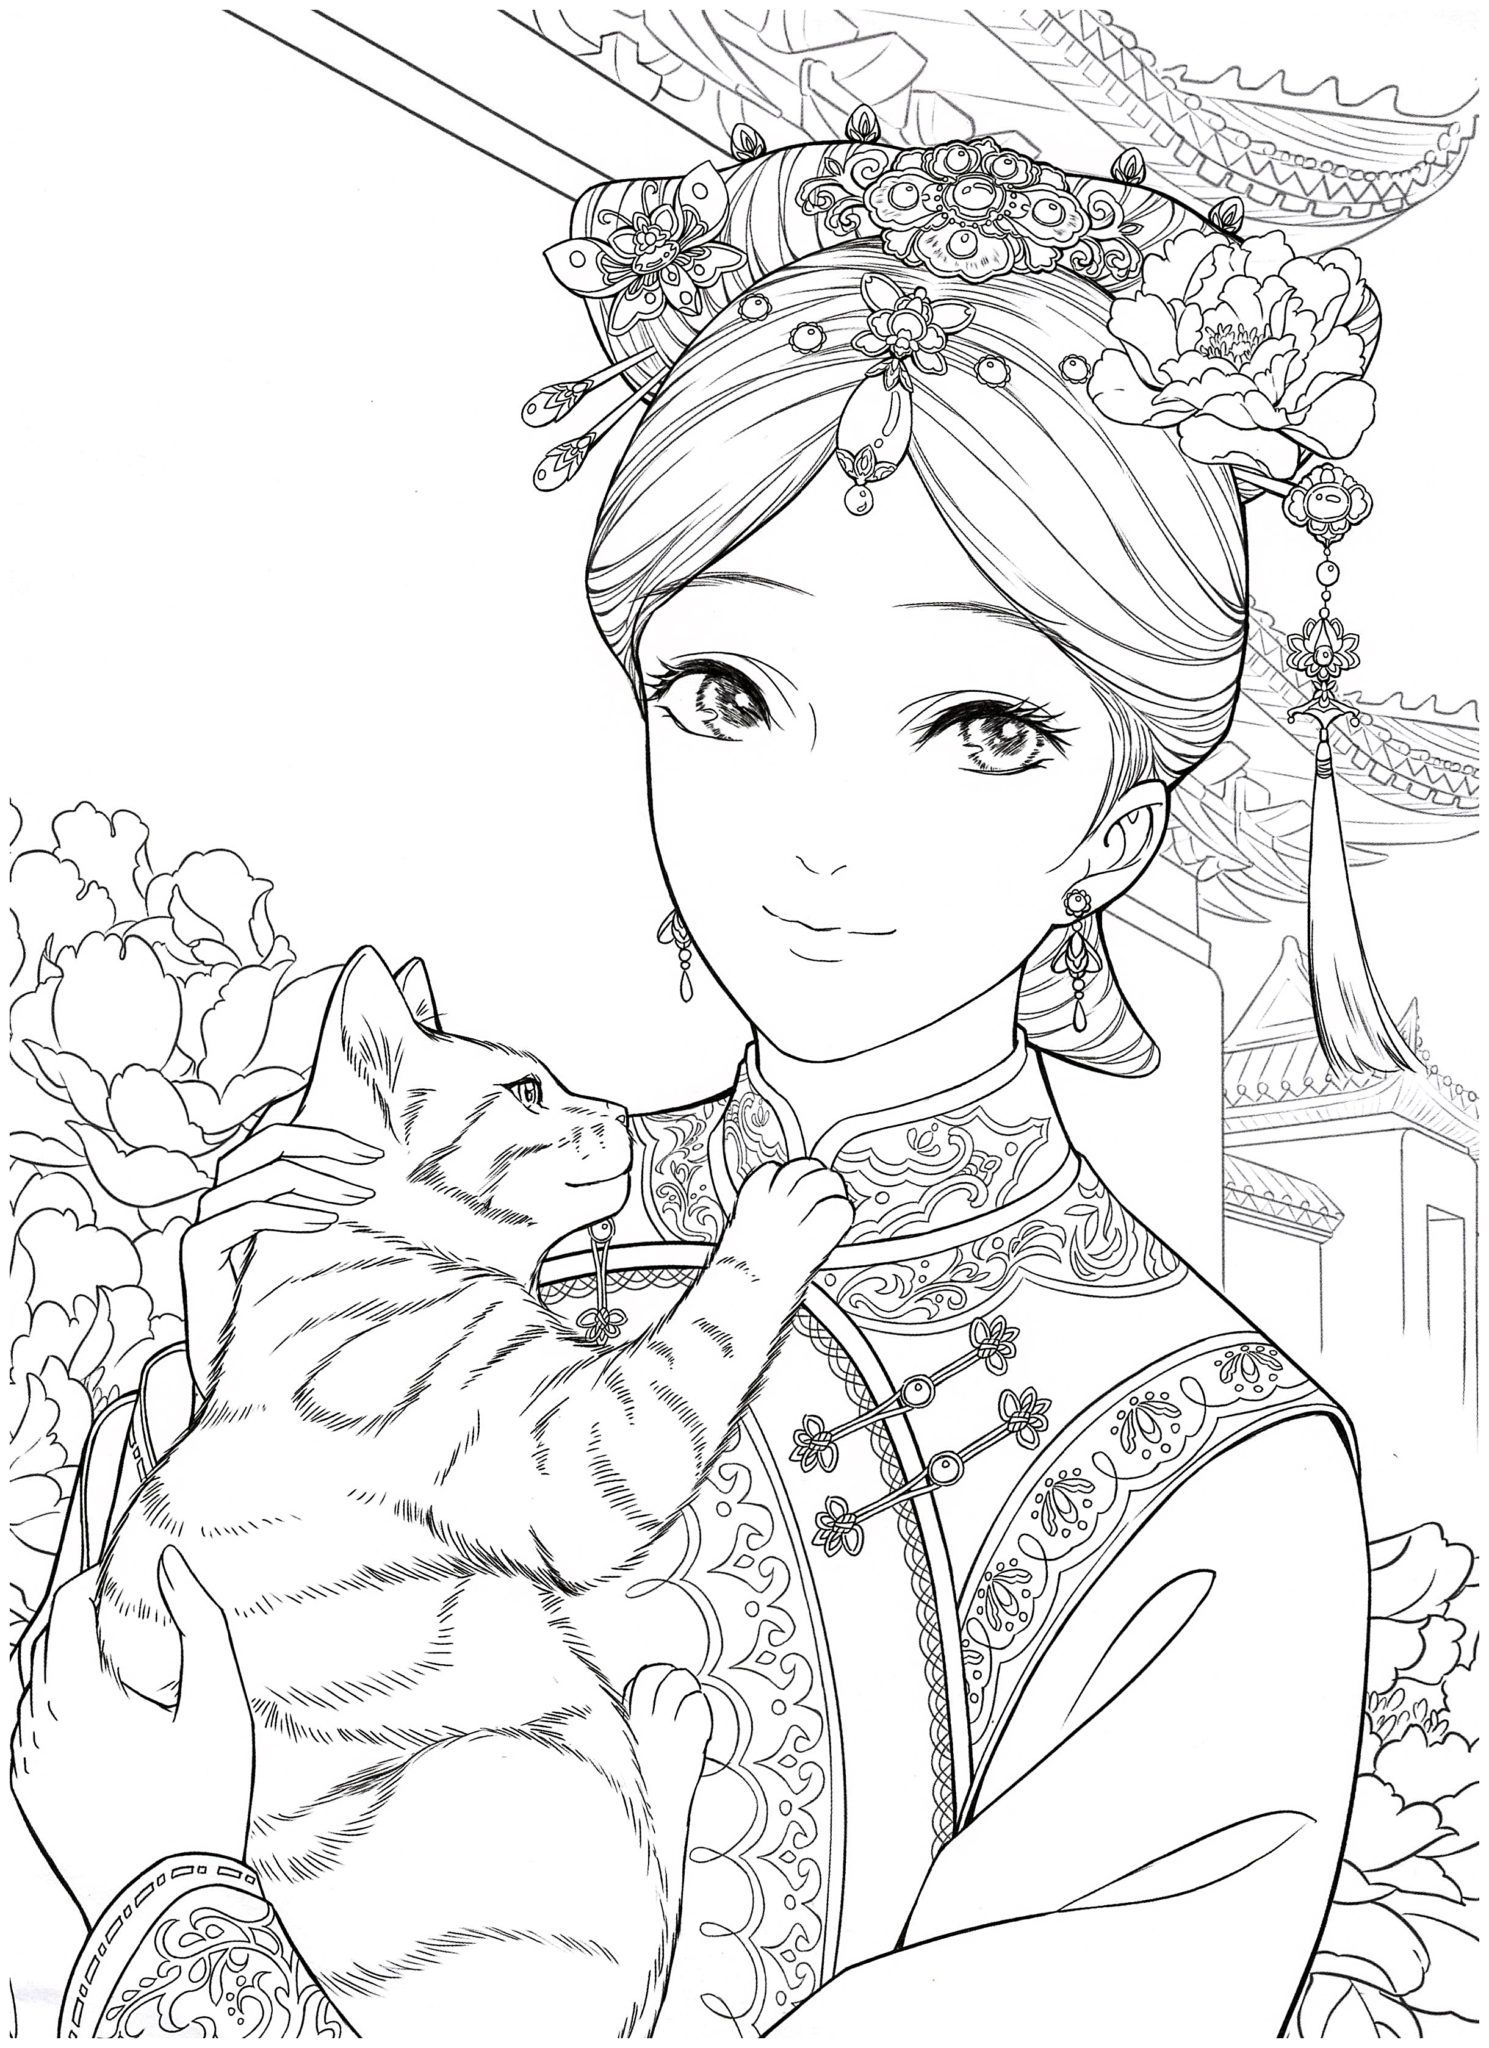 Chinese Portrait Coloring Ebook Vol 12 Kayliebooks Cute Coloring Pages People Coloring Pages Grayscale Coloring